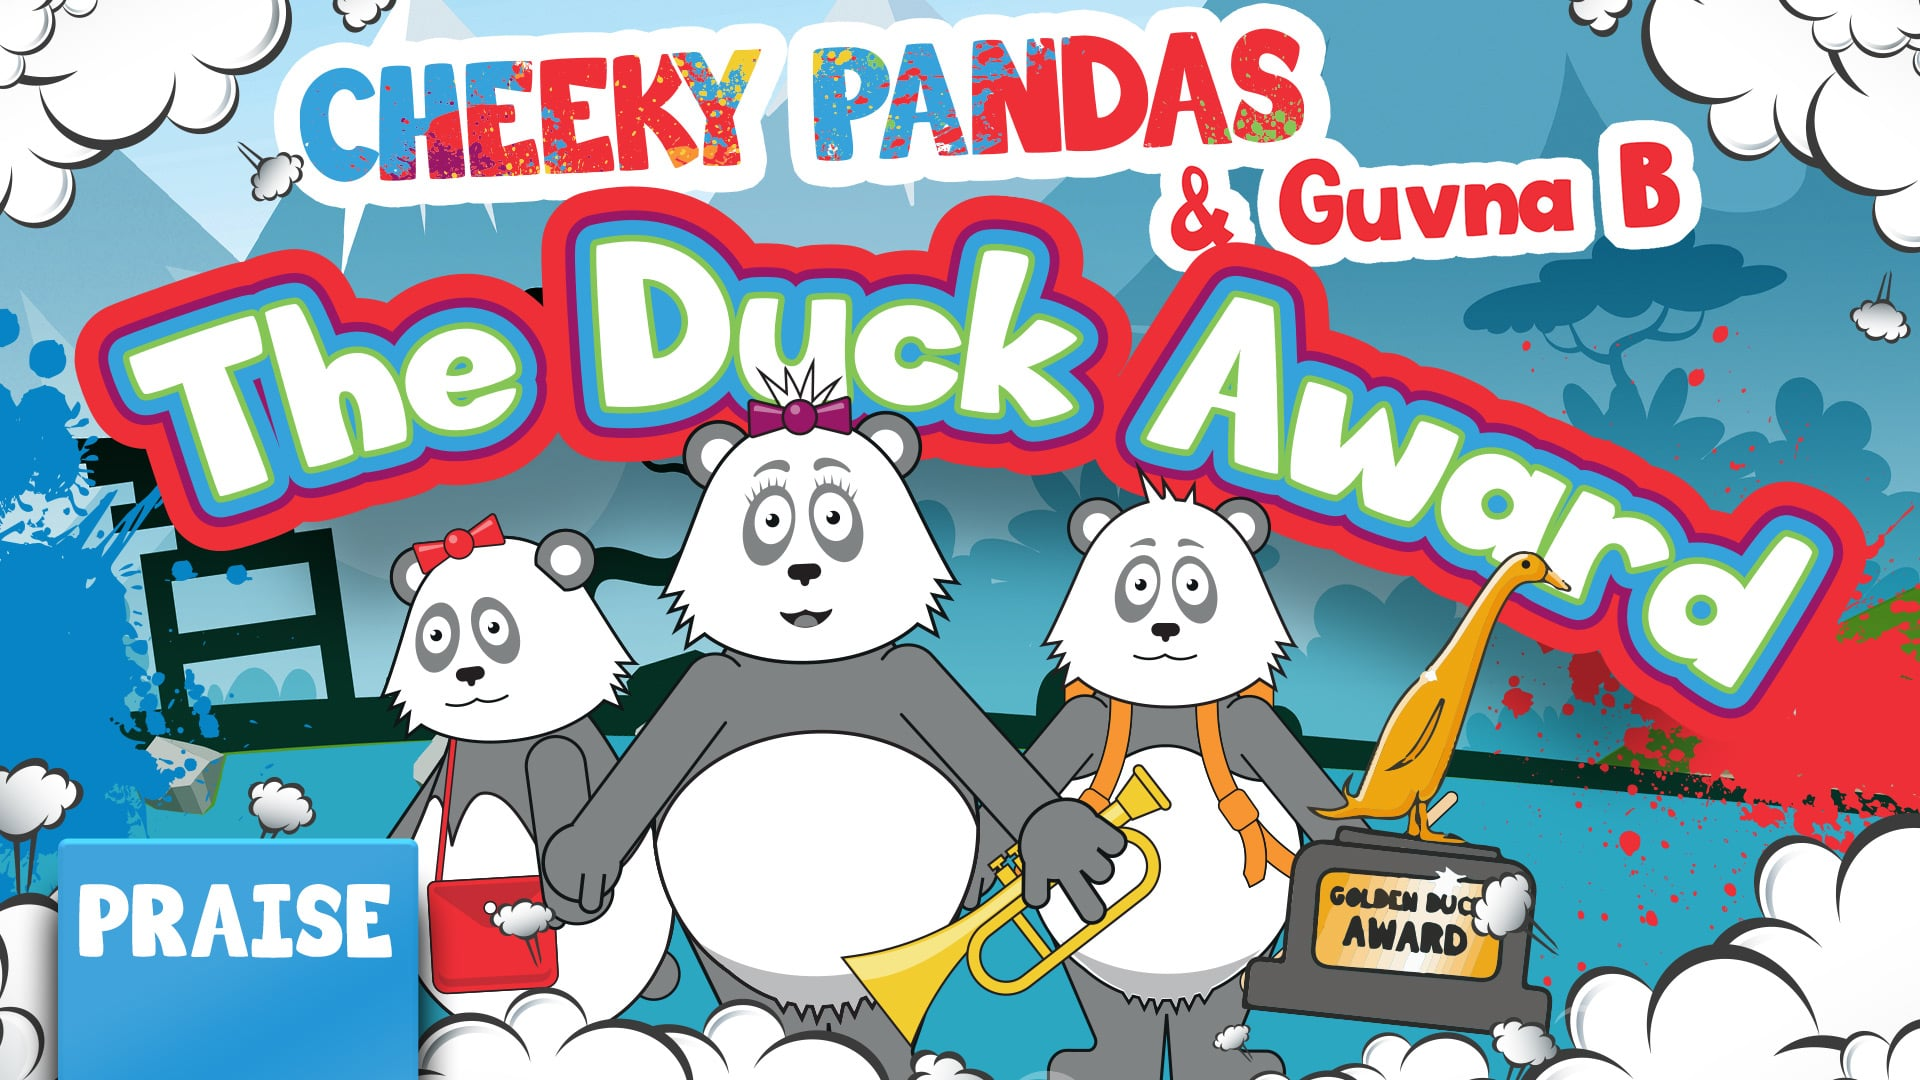 Day 2   The Duck Award with Guvna B (Praise)